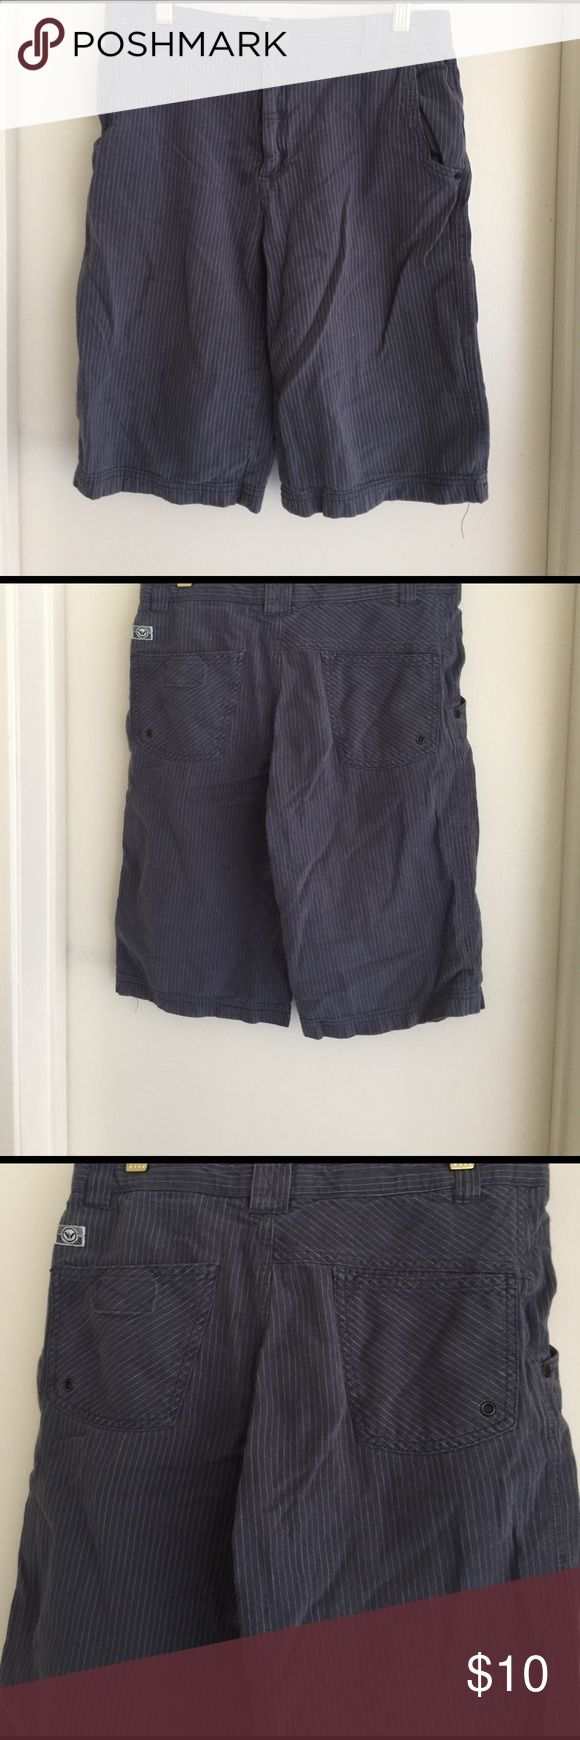 Shaun White  Shorts for boys  #AndresCloset🕶🤴 Shaun white Short for boys With a small stain on the front Shaun White Bottoms Shorts